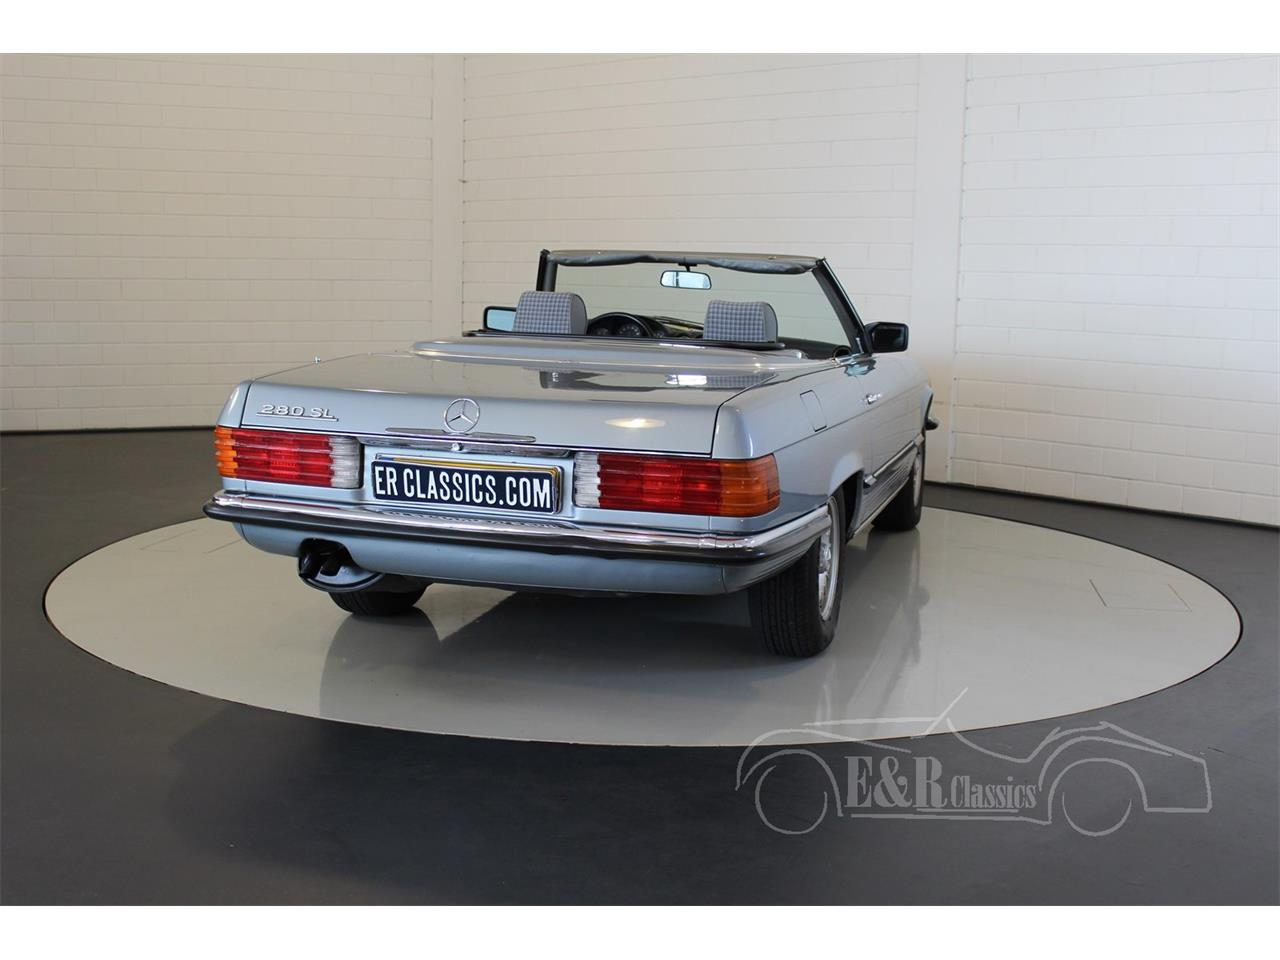 Large Picture of '83 Mercedes-Benz 280SL located in Waalwijk noord brabant - $34,150.00 Offered by E & R Classics - QEBS